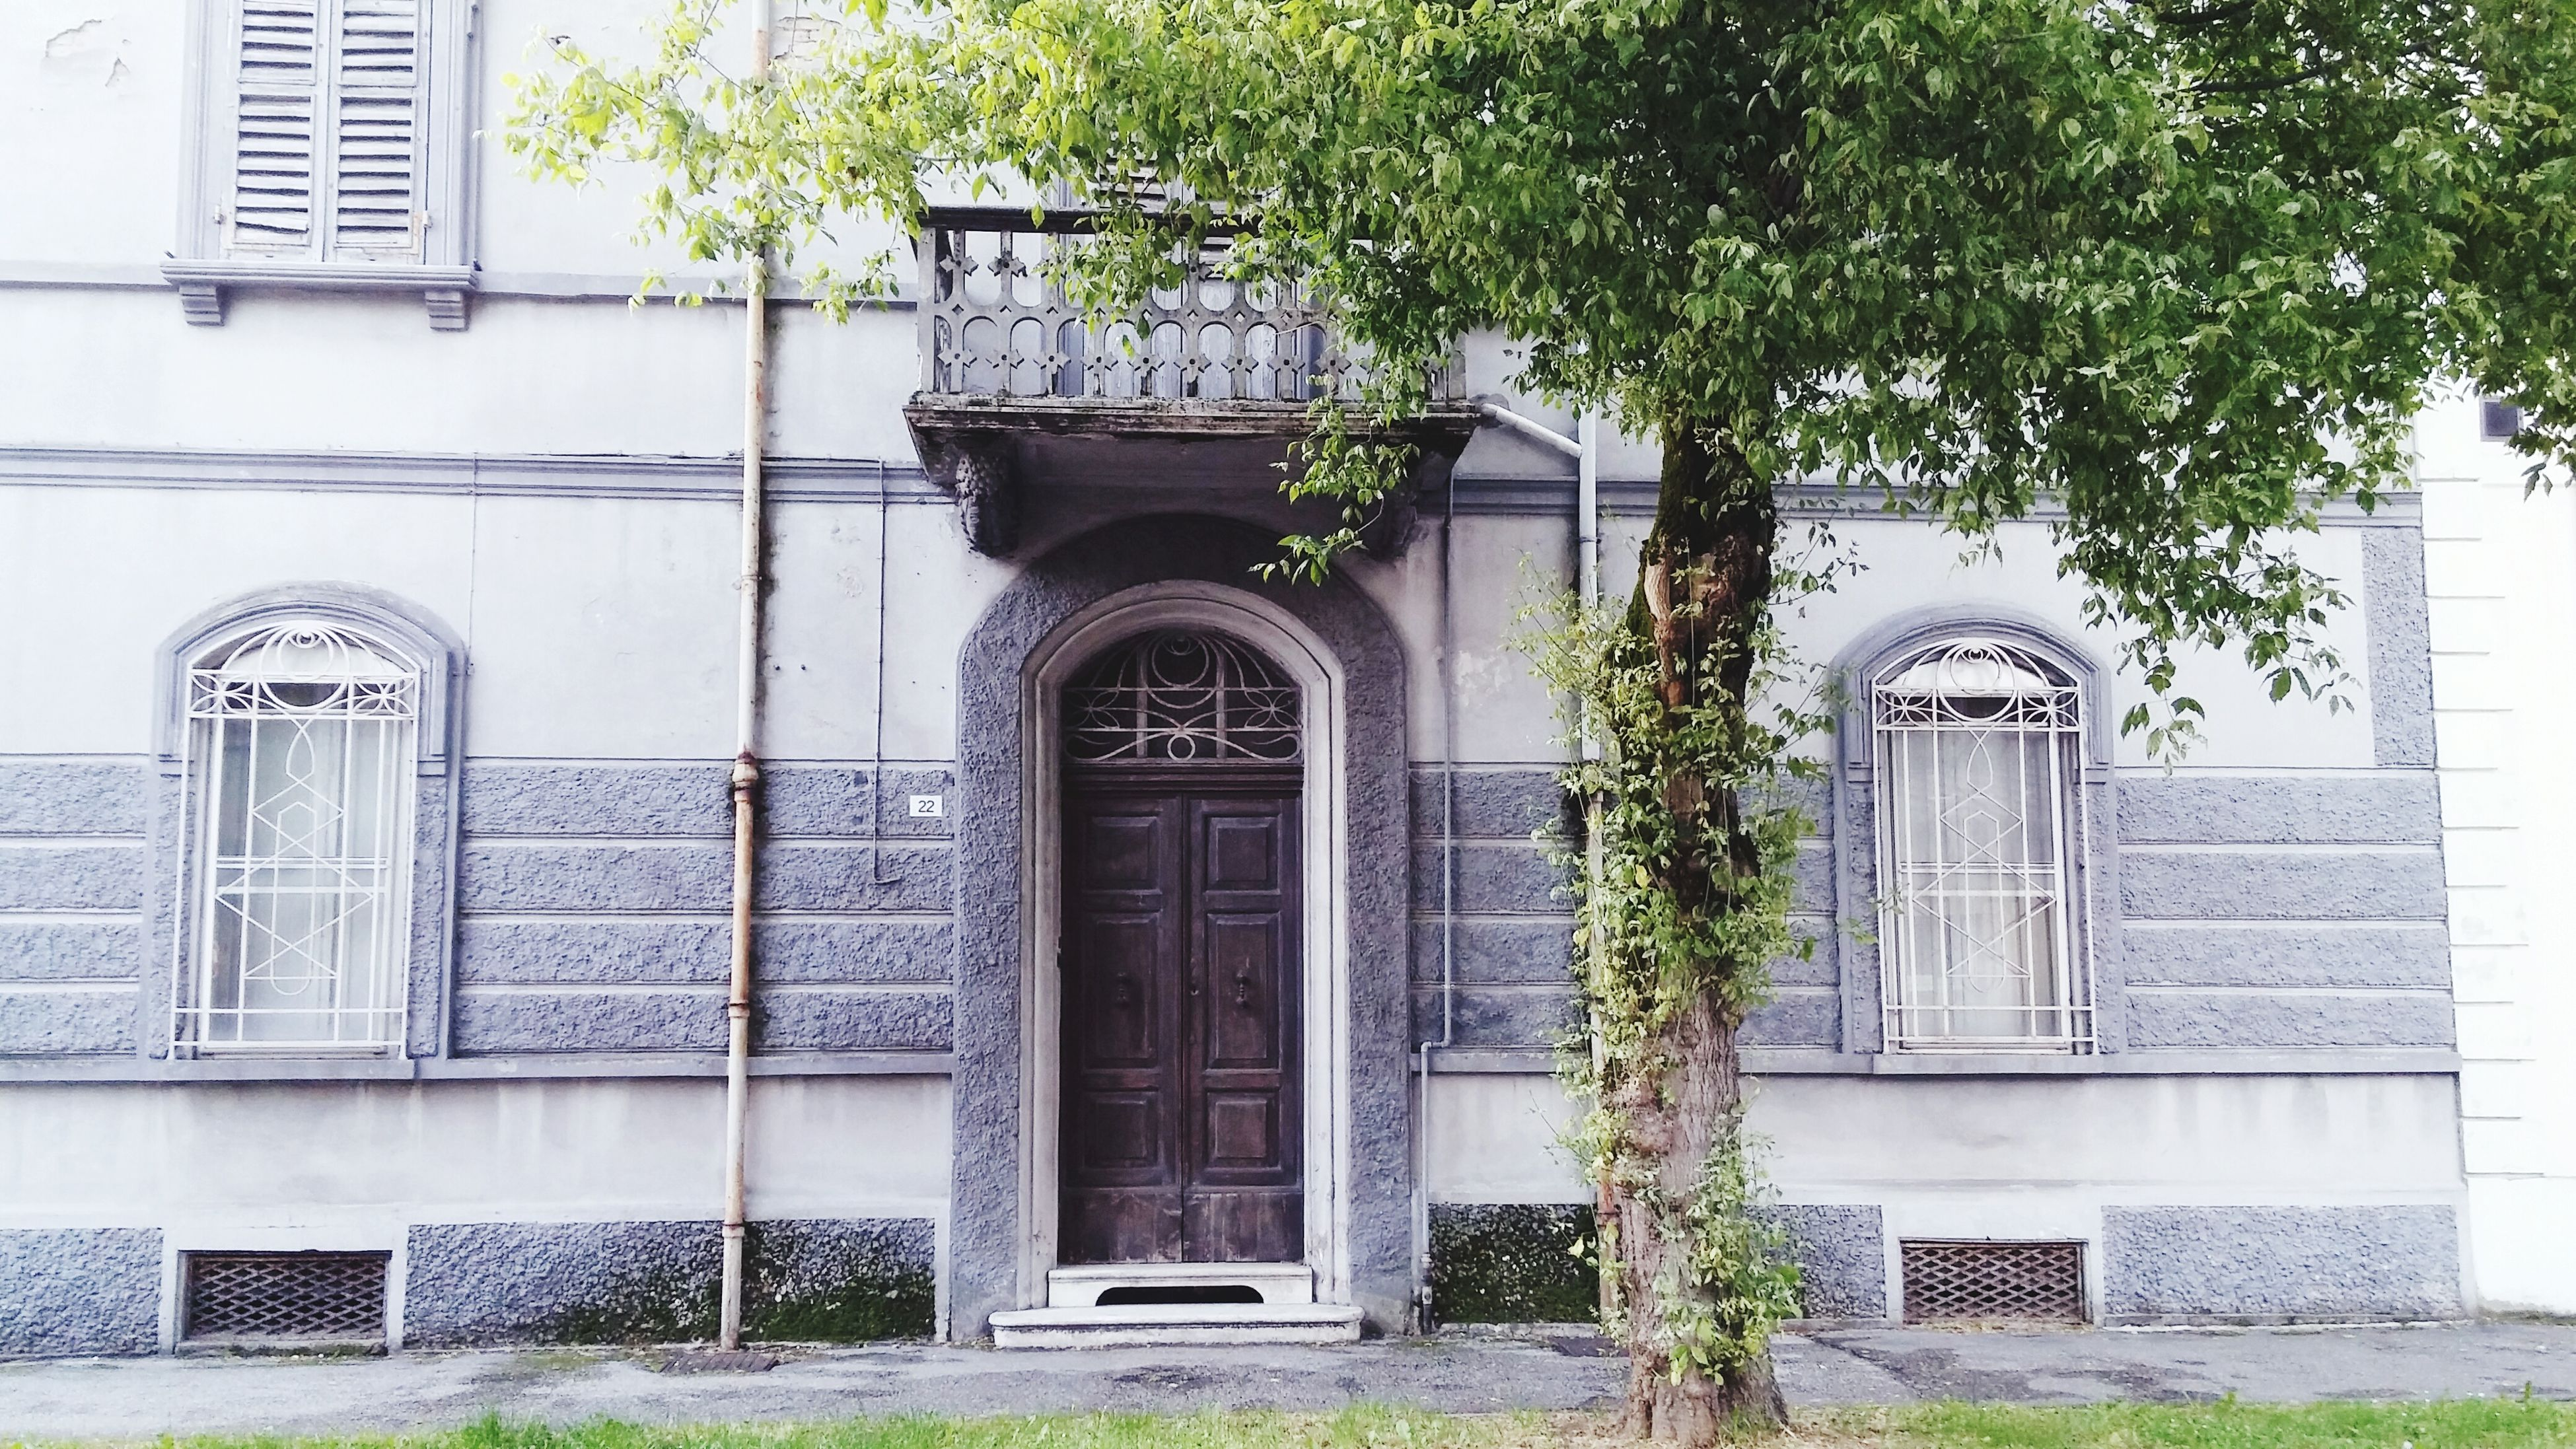 building exterior, architecture, built structure, window, door, facade, entrance, plant, house, arch, closed, tree, outdoors, day, building, residential building, no people, potted plant, growth, residential structure